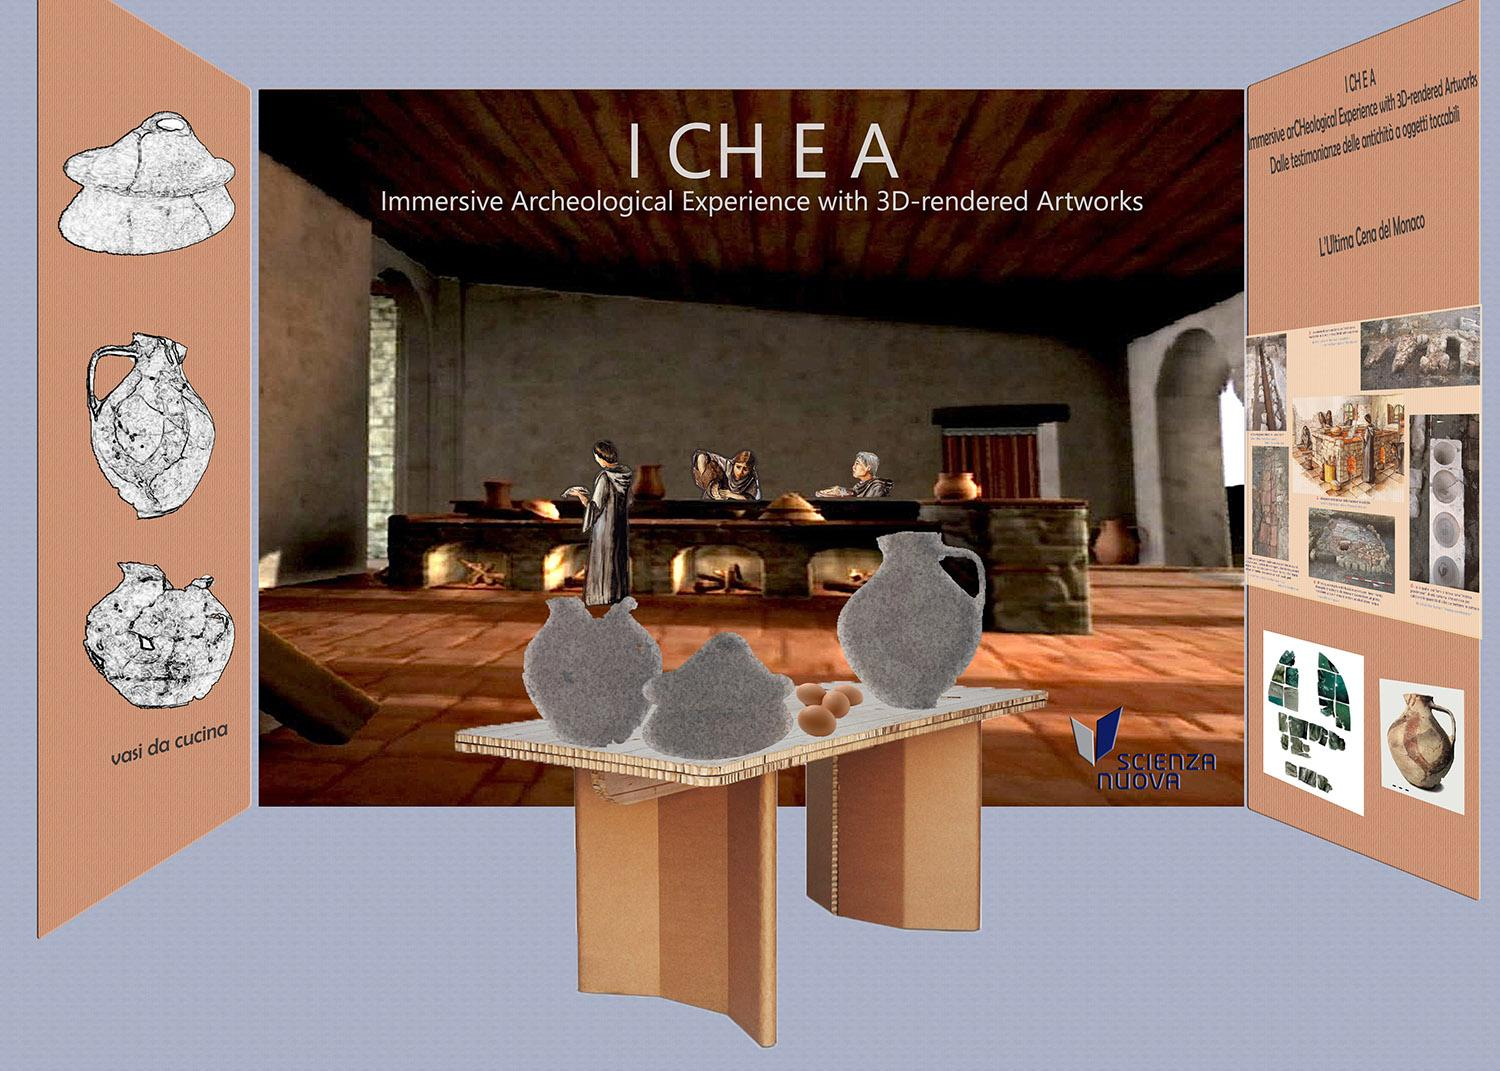 ICHEA - Immersive arCHeological Experience with 3D-rendered Artworks